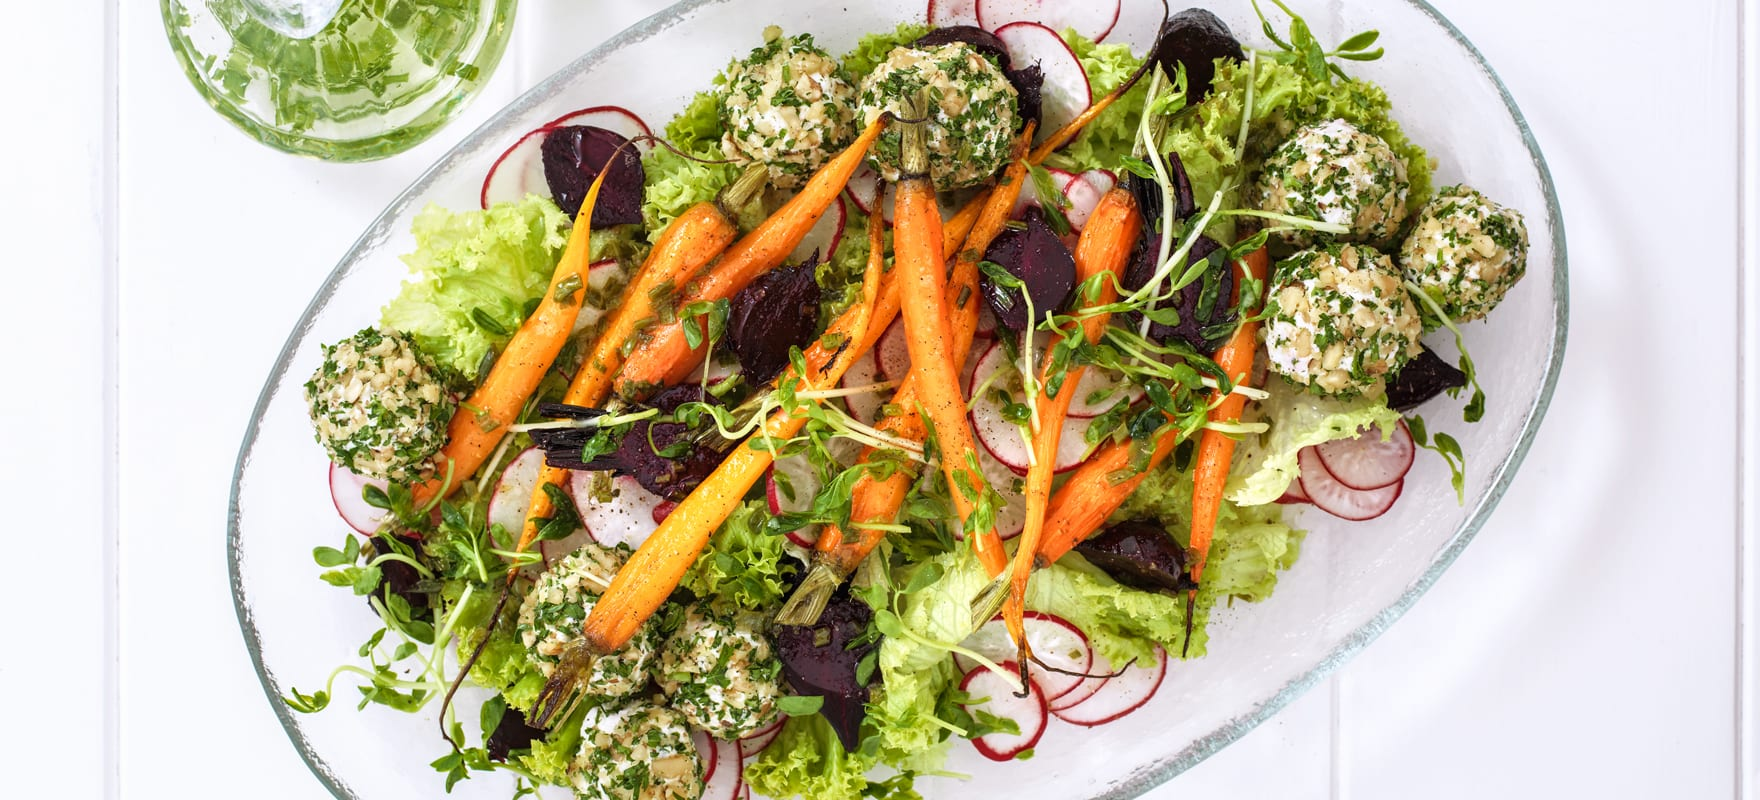 Baby carrot, beetroot & goat's cheese salad image 1